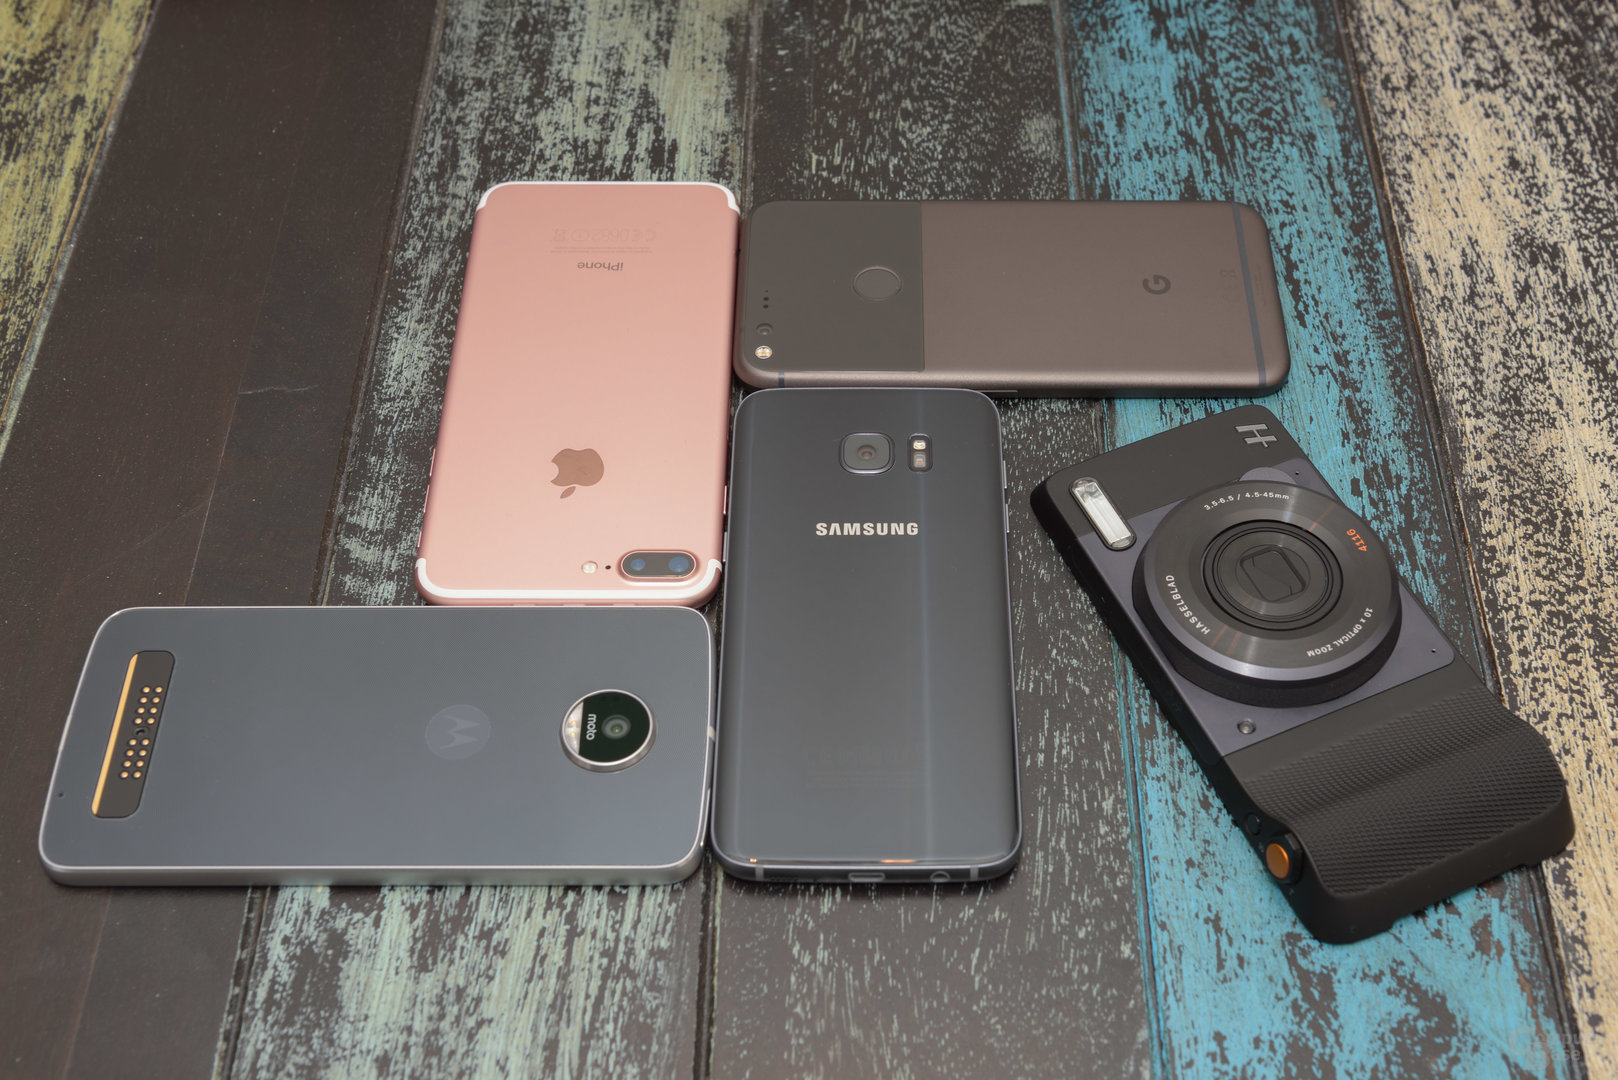 Google Pixel XL, iPhone 7 Plus, Samsung Galaxy S7 Edge, Lenovo Moto Z Play und Hasselblad True Zoom nebeneinander